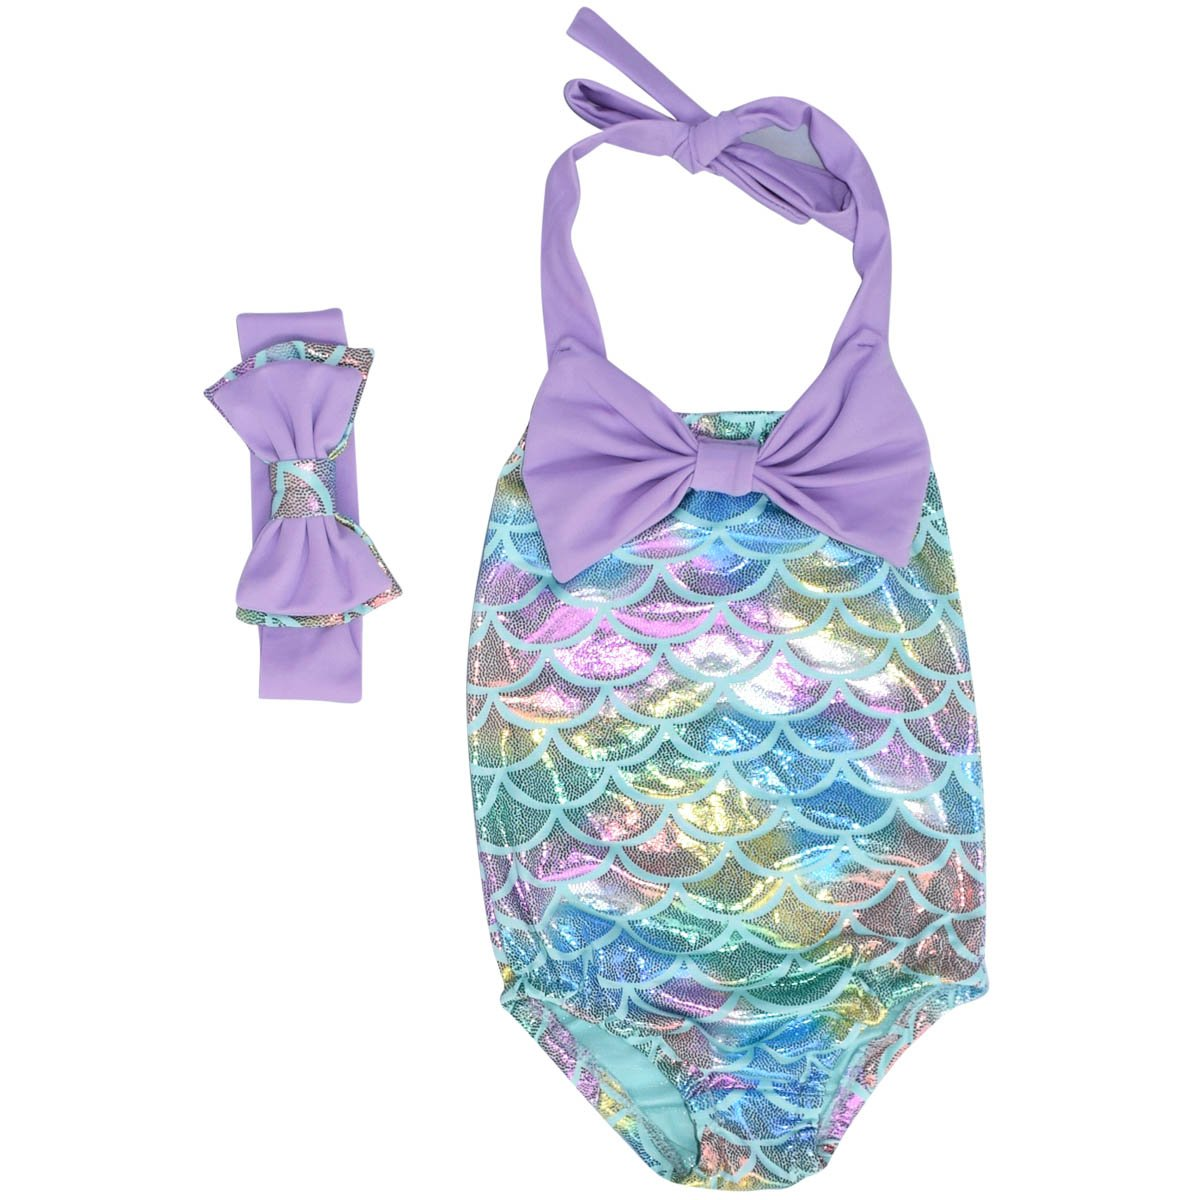 12d27db8d WHAT BABIES LOVE  Mermaids! Every little girl loves mermaids! Now yours can  be one in this adorable mermaid themed outfit. You won t get any fuss about  ...